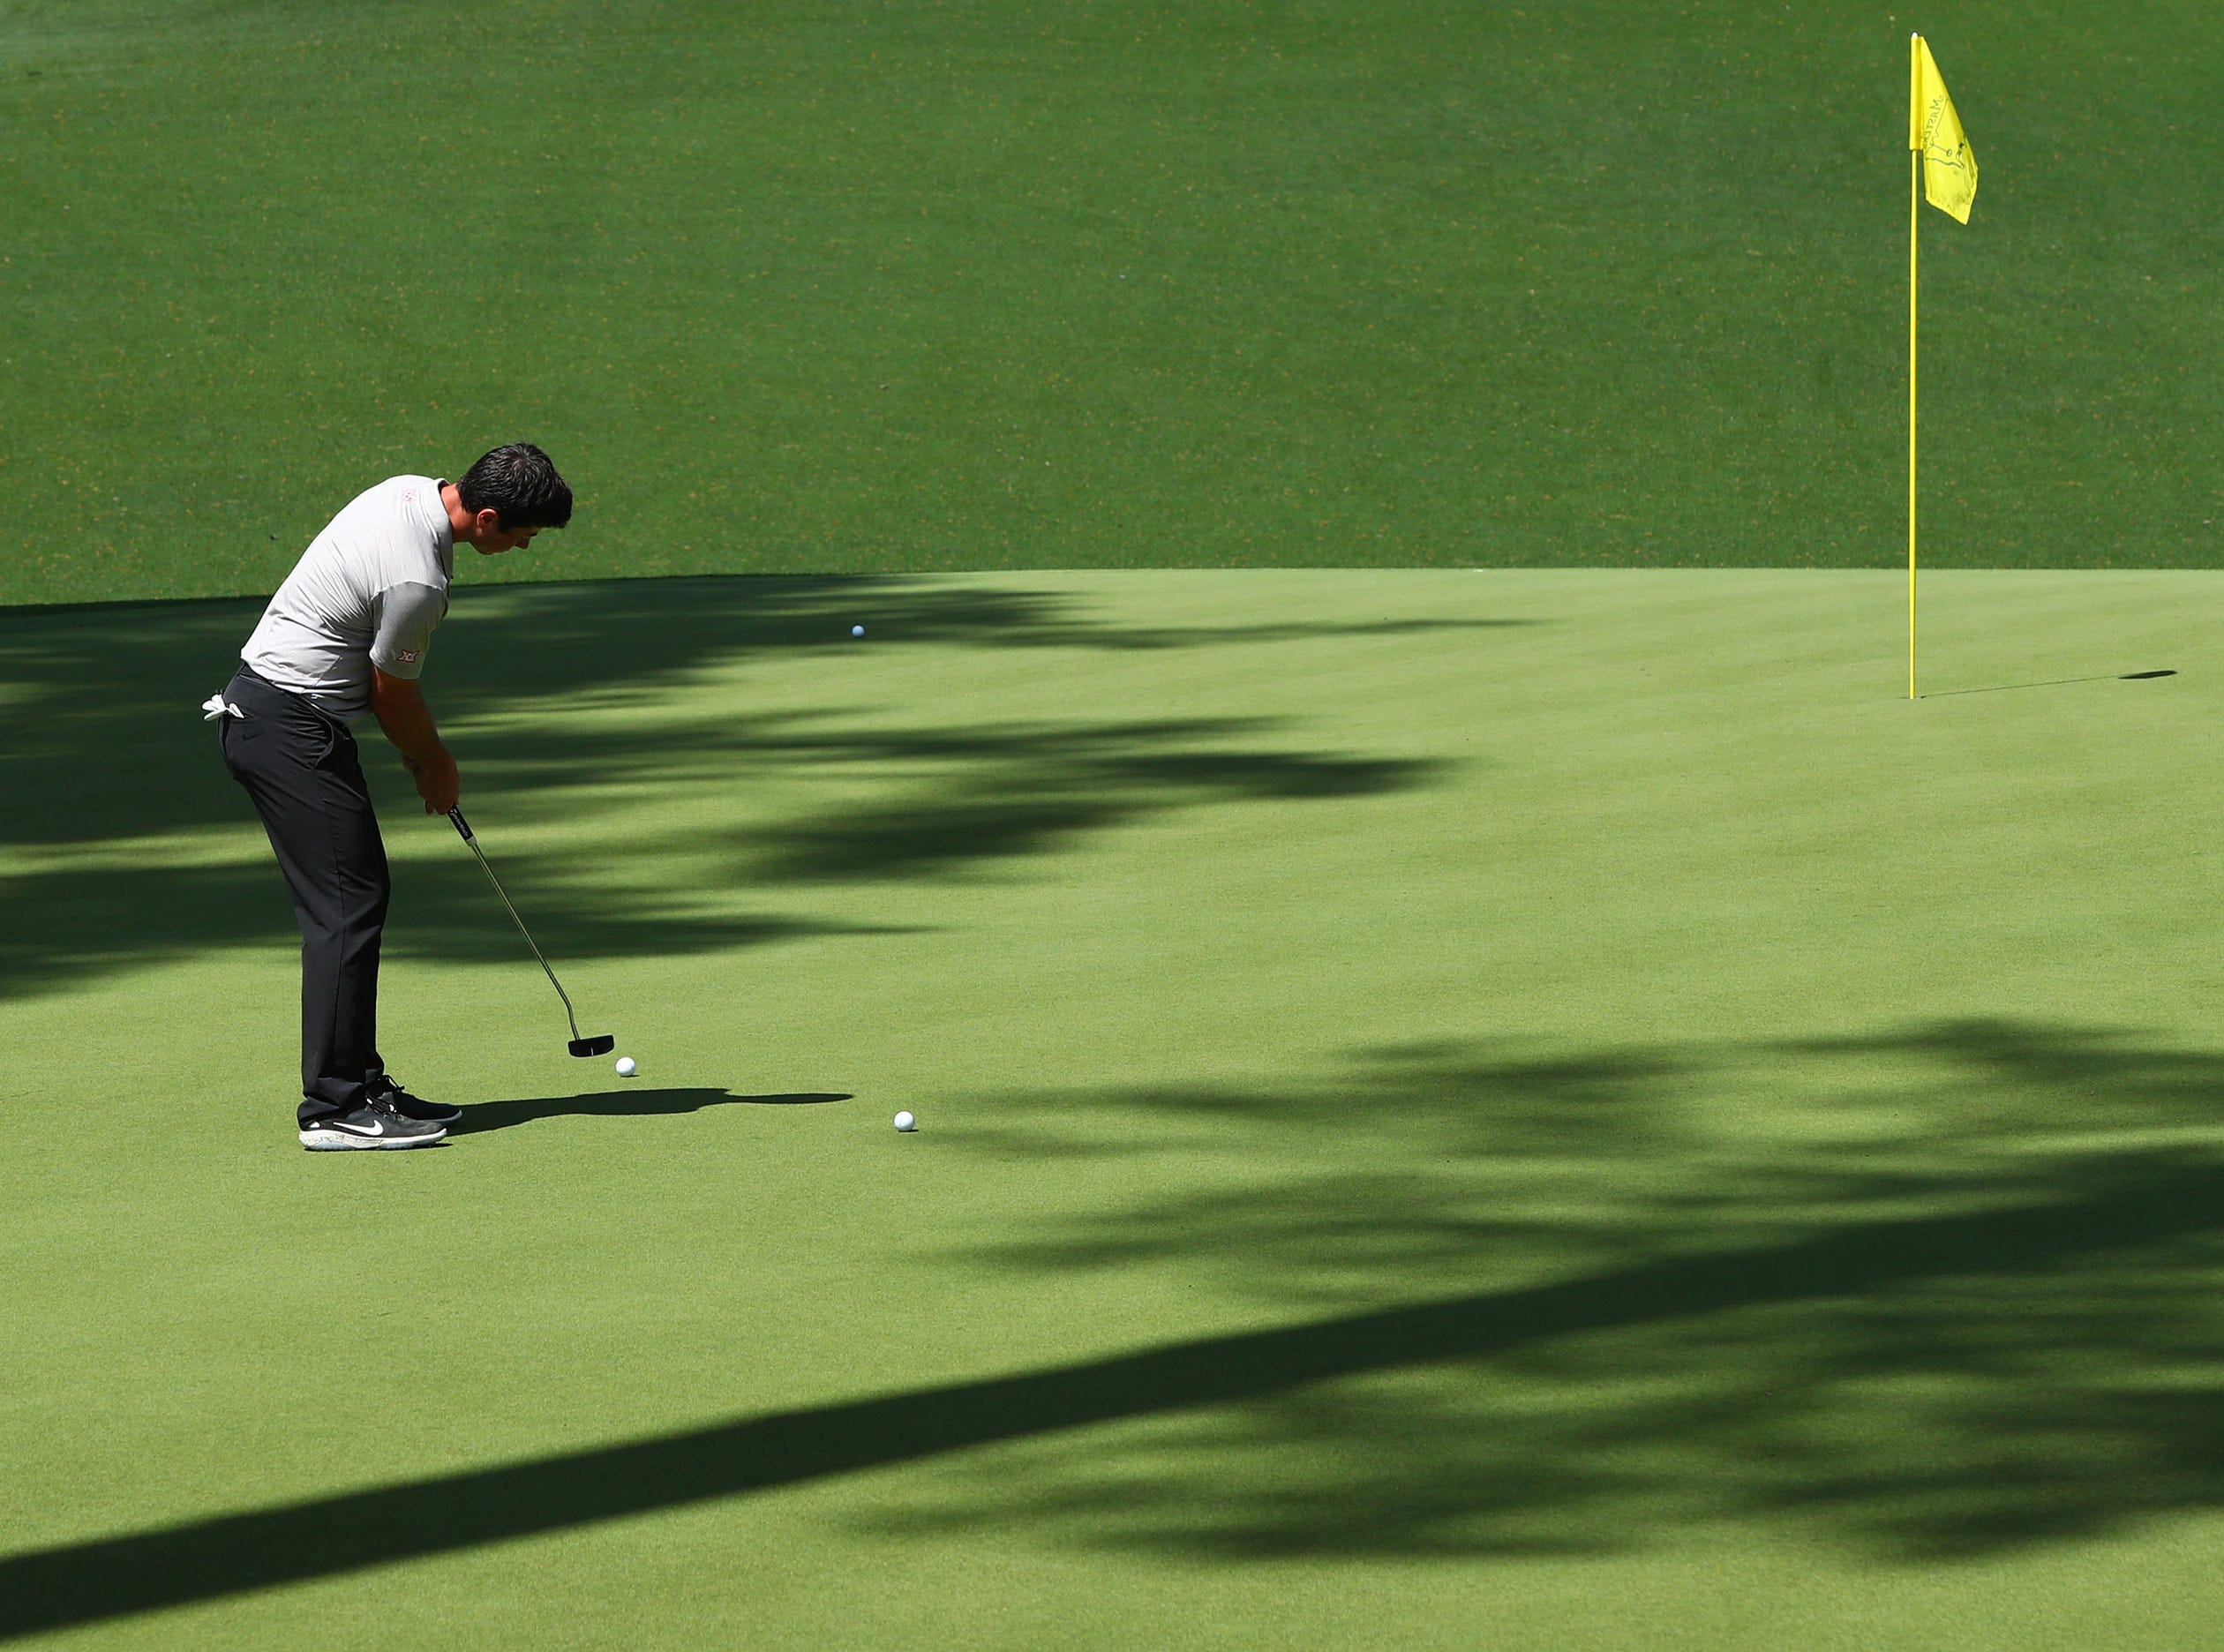 Apr 9, 2019; Augusta, GA, USA; Viktor Hovland putts on the 10th green during a practice round for The Masters golf tournament at Augusta National Golf Club. Mandatory Credit: Rob Schumacher-USA TODAY Sports